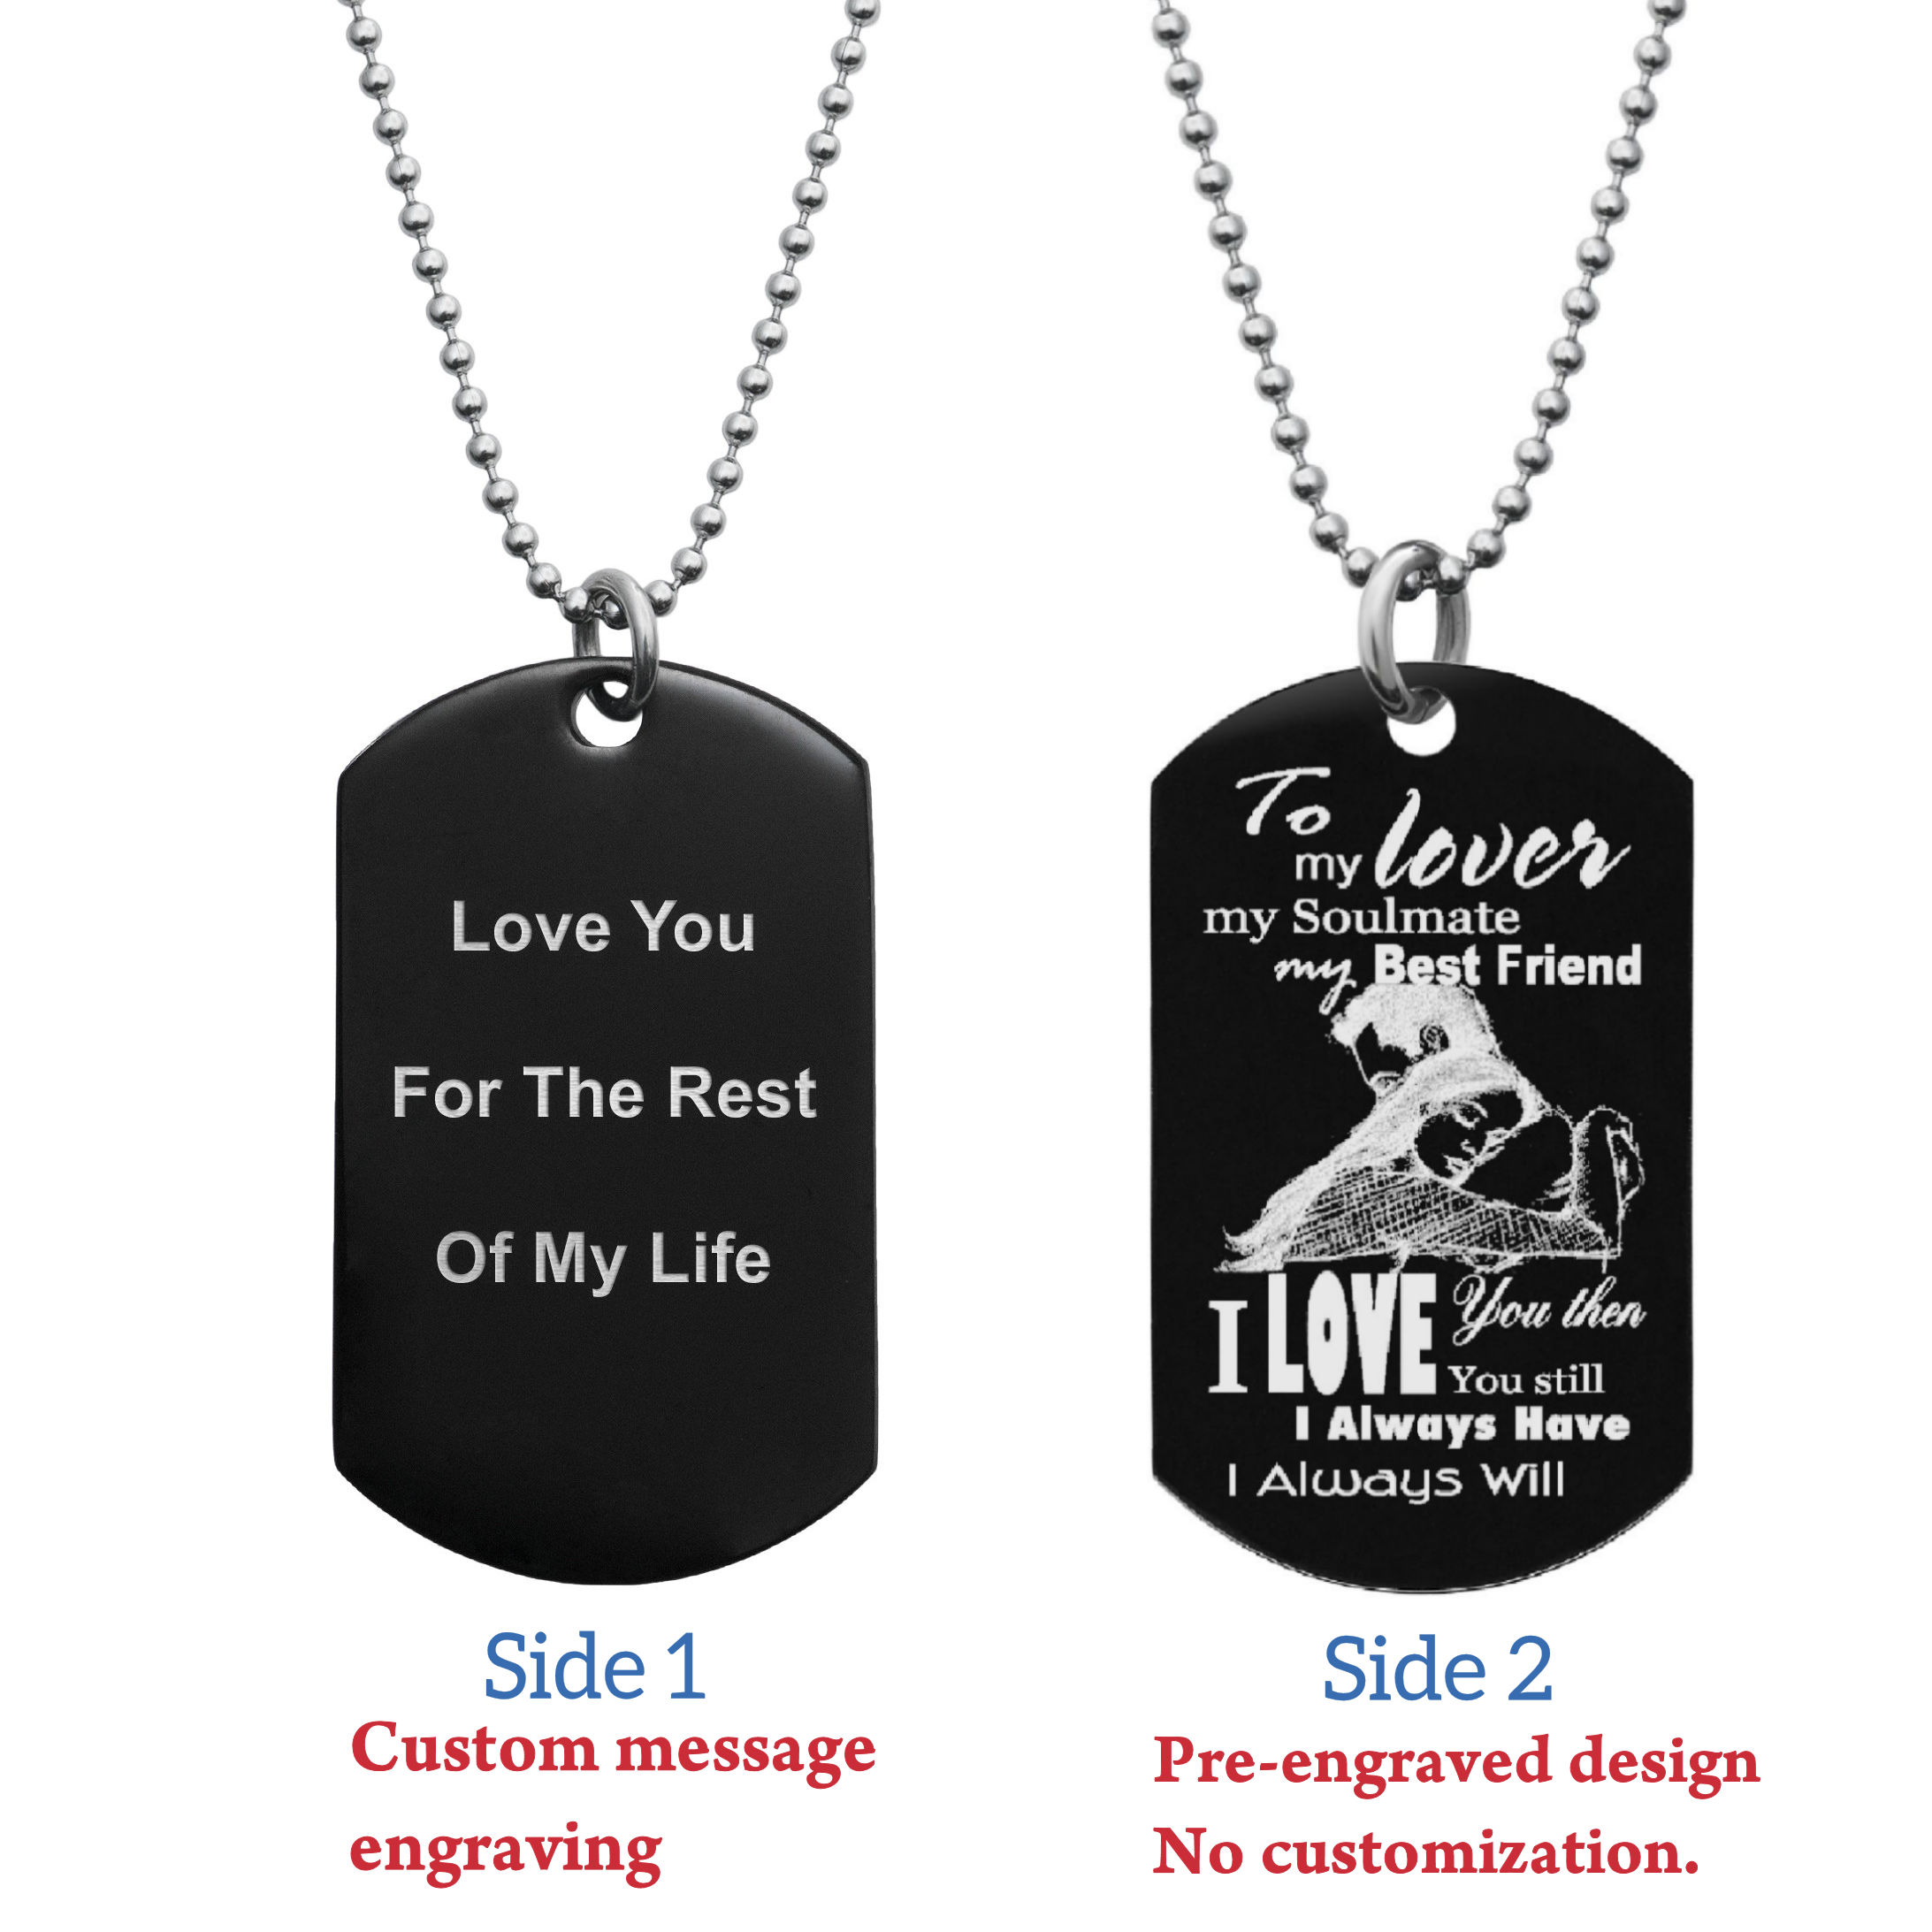 "To My Lover My Soulmate Soulmate Best Friend Back Side Text Engraving Custom Dog Tag w/ Dot Ball Chain Necklace 24"" - Handmade"